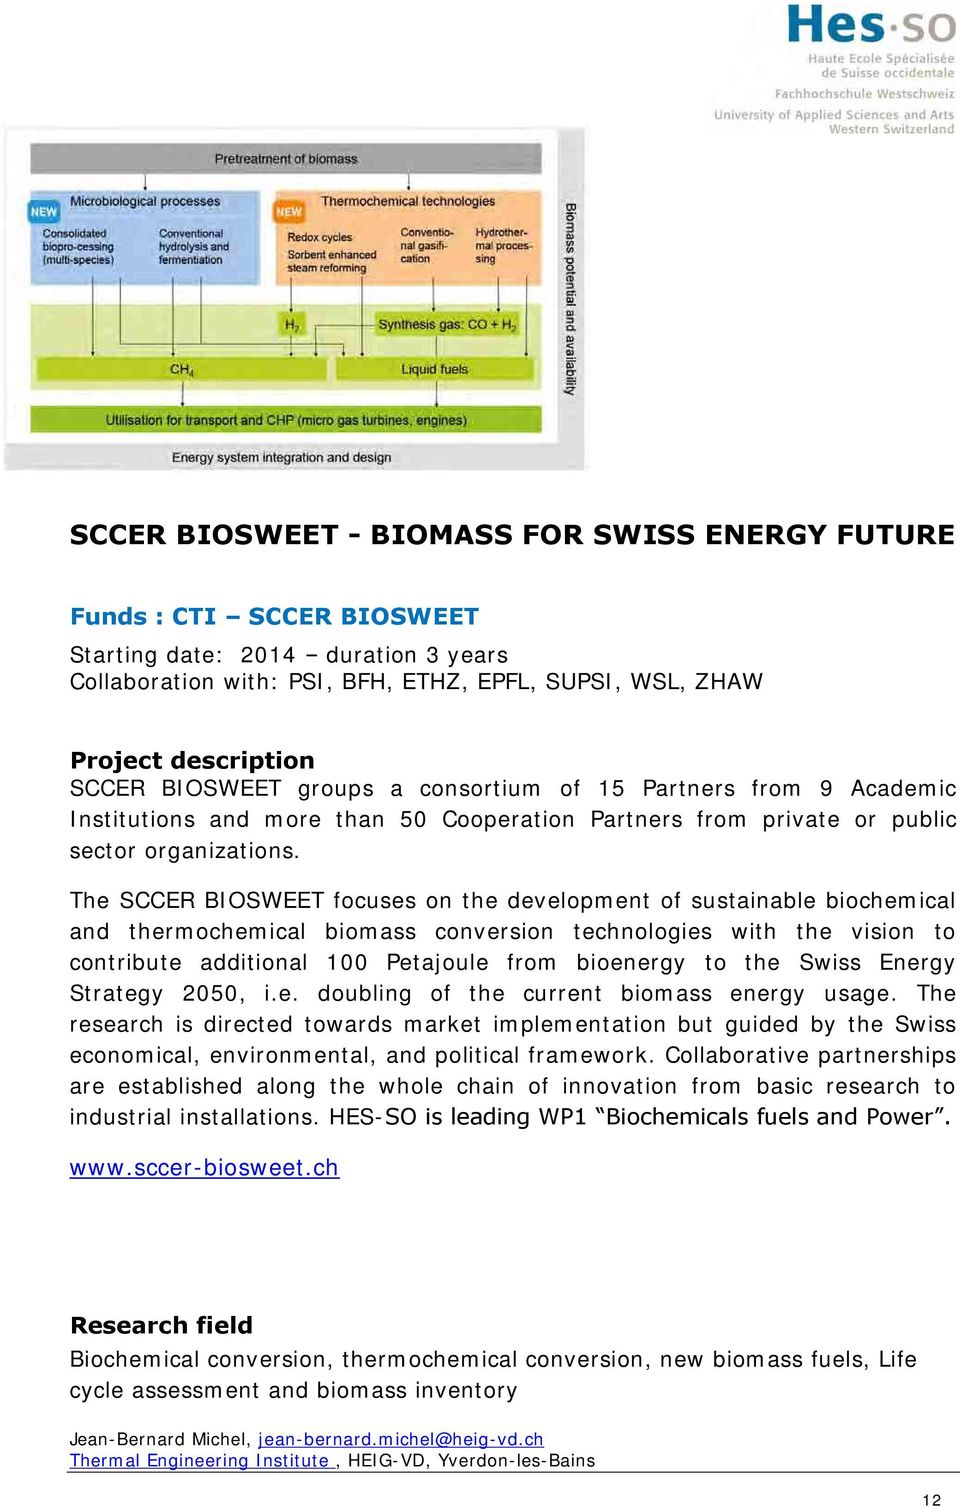 The SCCER BIOSWEET focuses on the development of sustainable biochemical and thermochemical biomass conversion technologies with the vision to contribute additional 100 Petajoule from bioenergy to